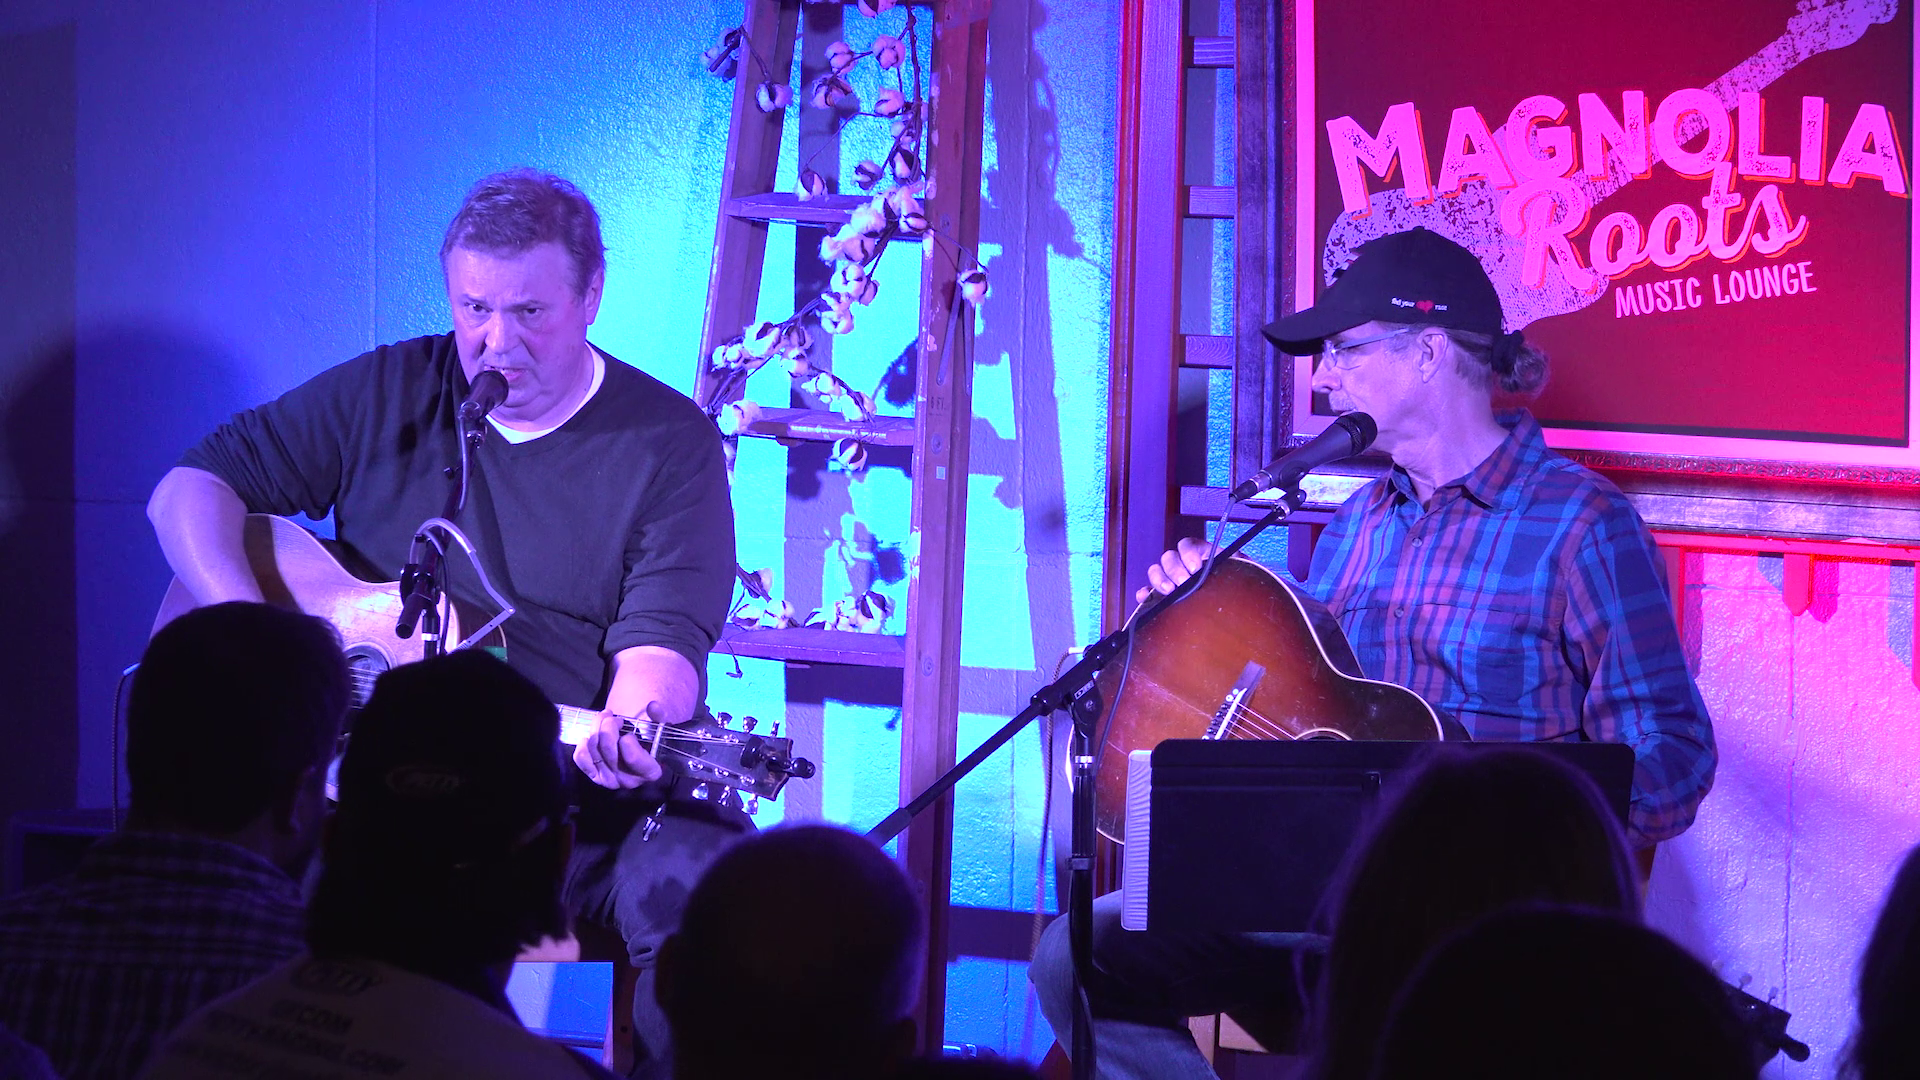 David Childers performing at Magnolia Roots Music Lounge with Kyle Petty